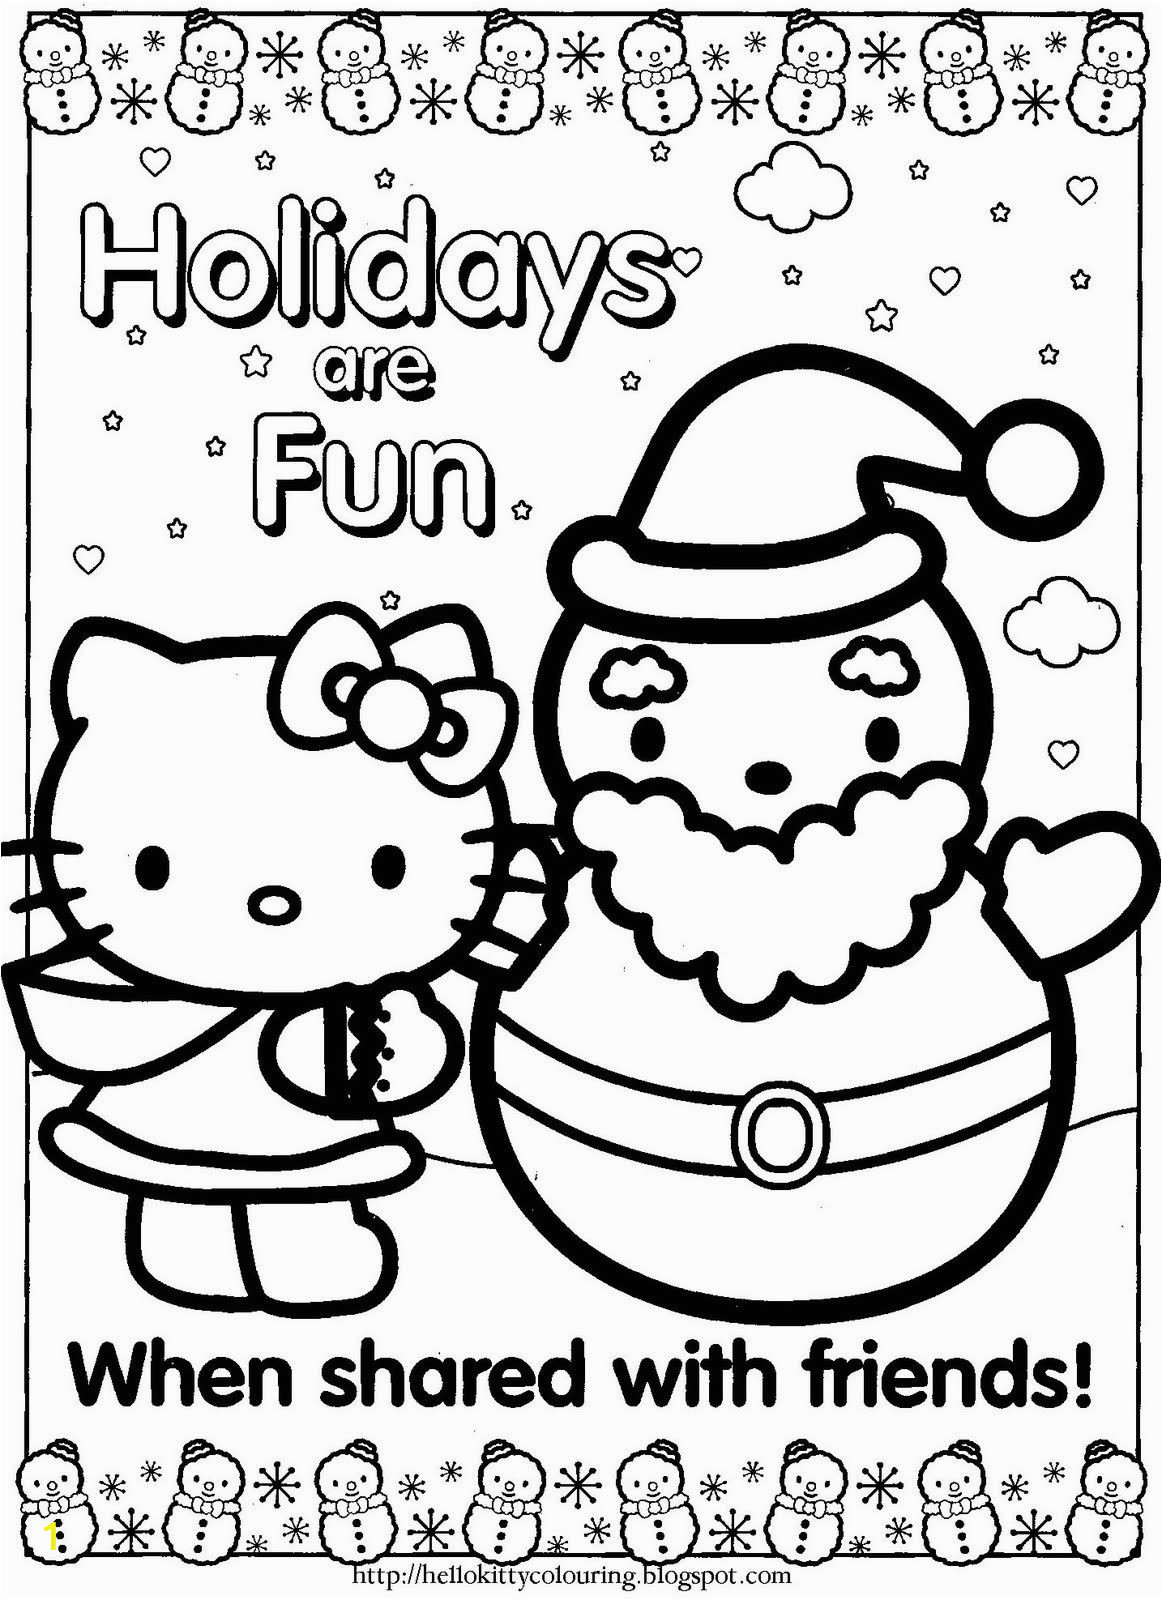 Merry Christmas Hello Kitty Coloring Pages Happy Holidays Hello Kitty Coloring Page